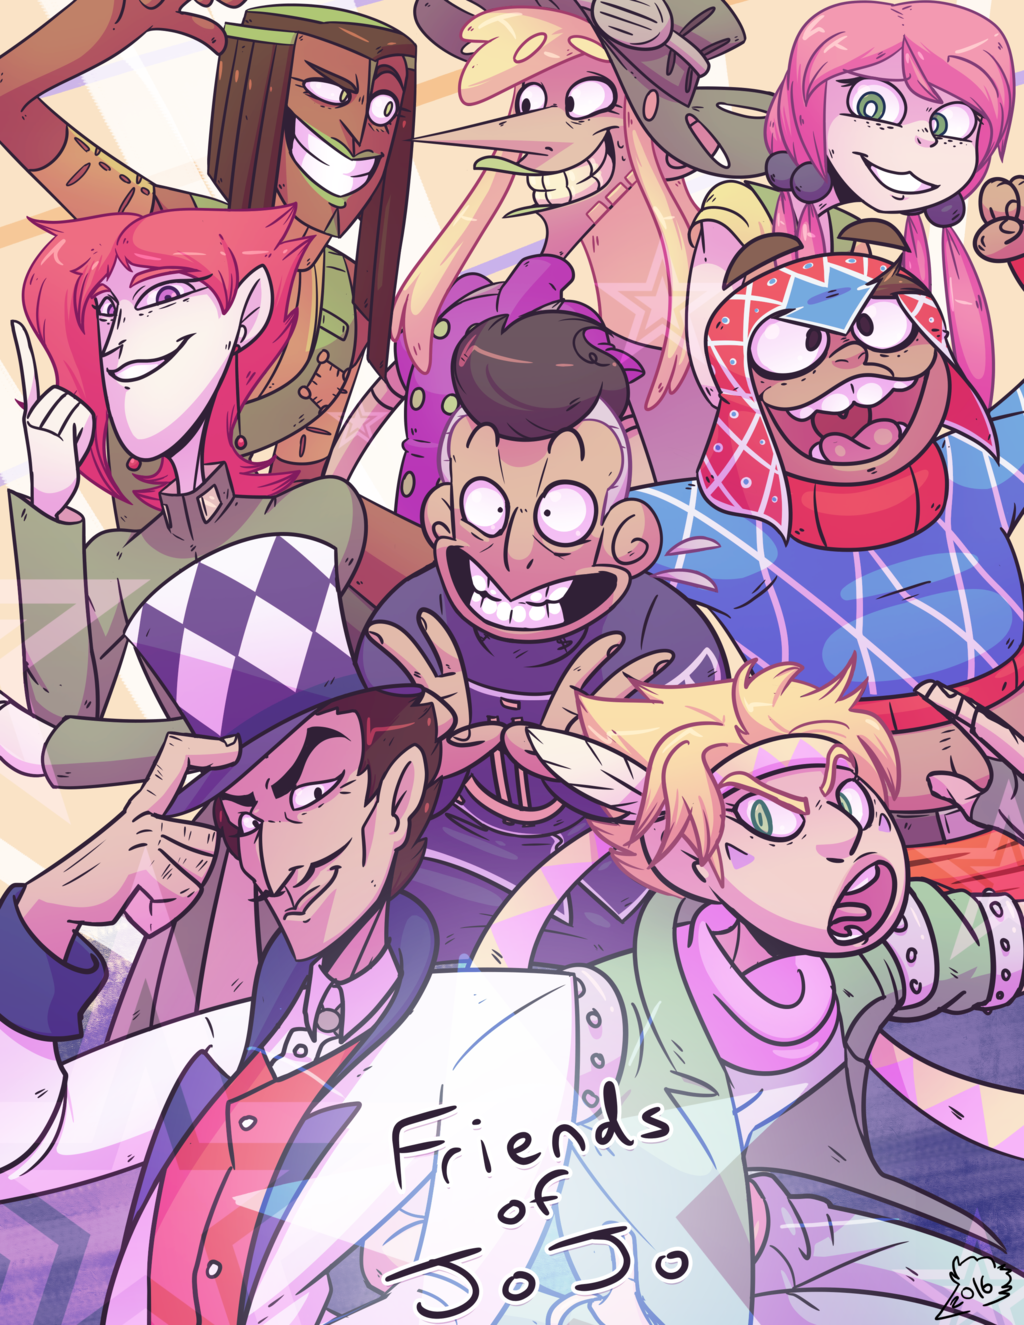 Friends of Jojo